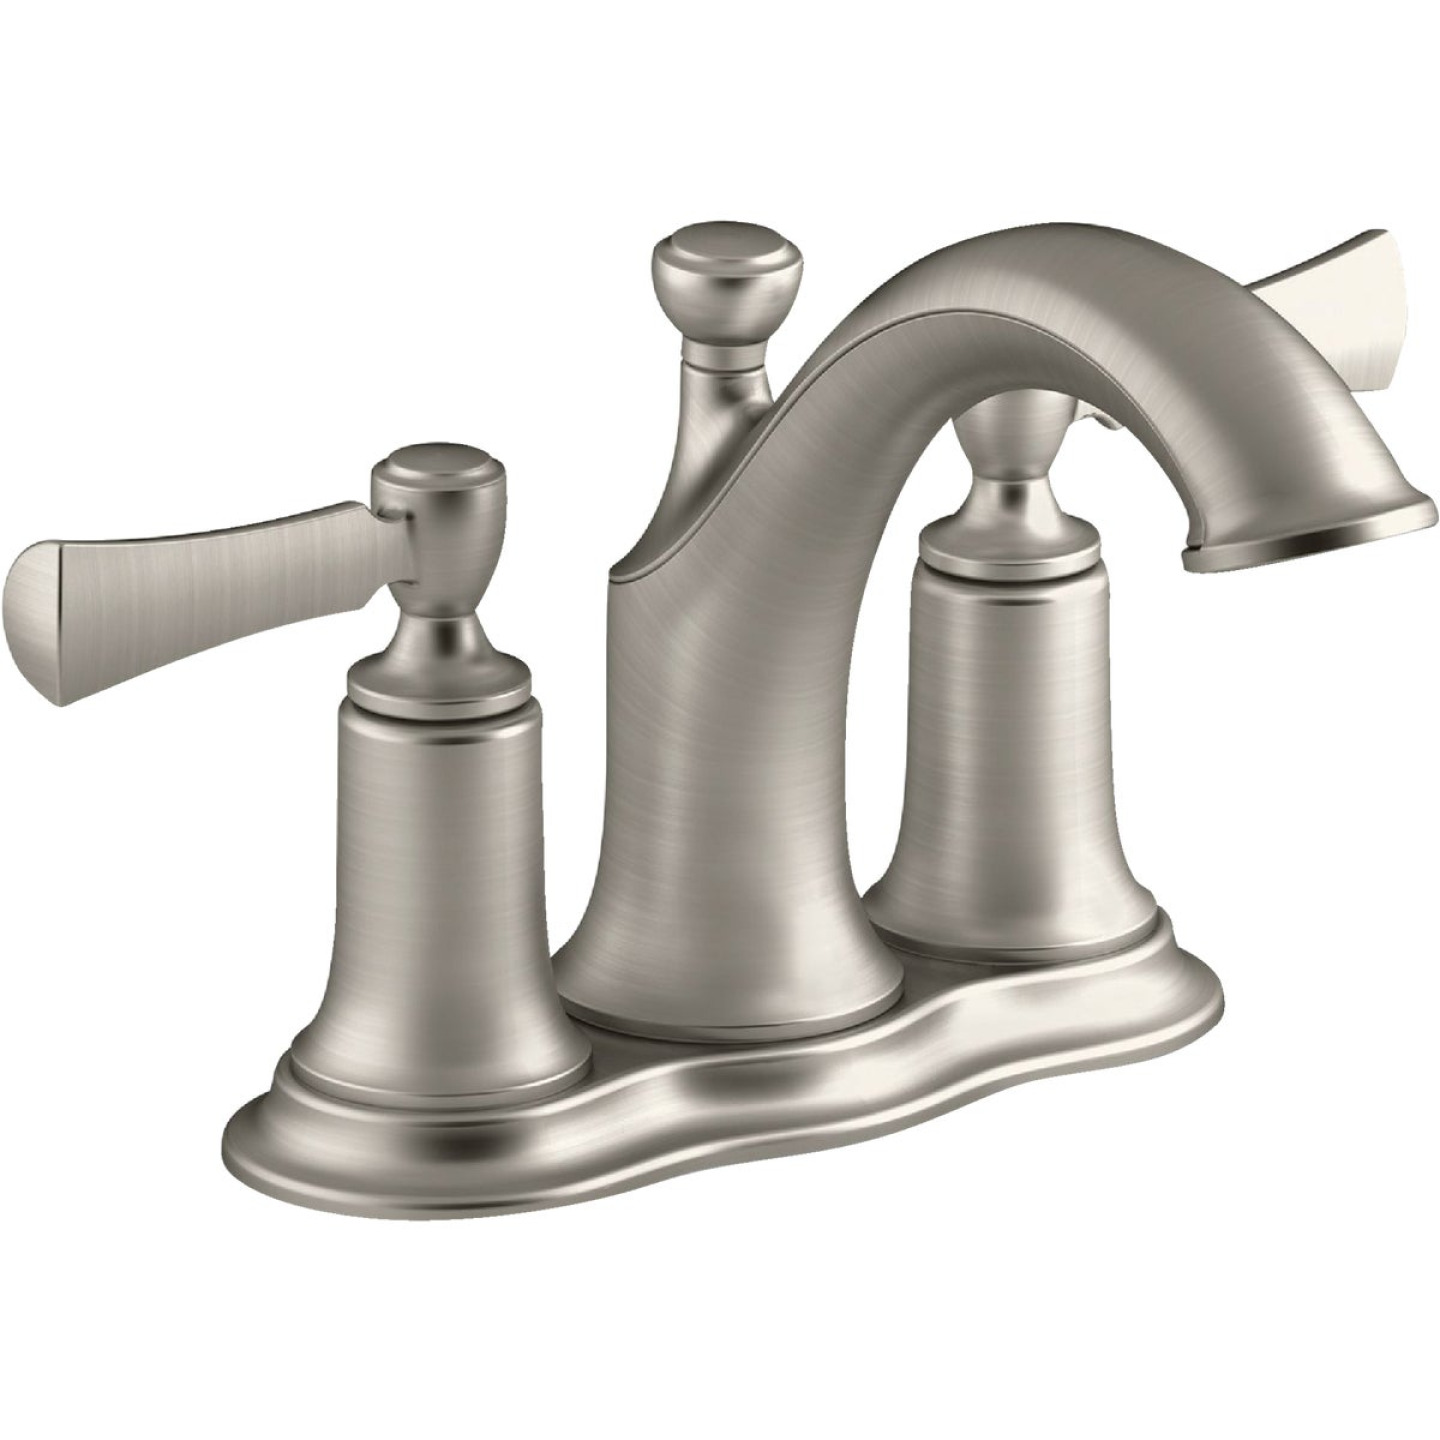 Kohler Elliston Brushed Nickel 2-Handle Lever 4 In. Centerset Bathroom Faucet with Pop-Up Image 1